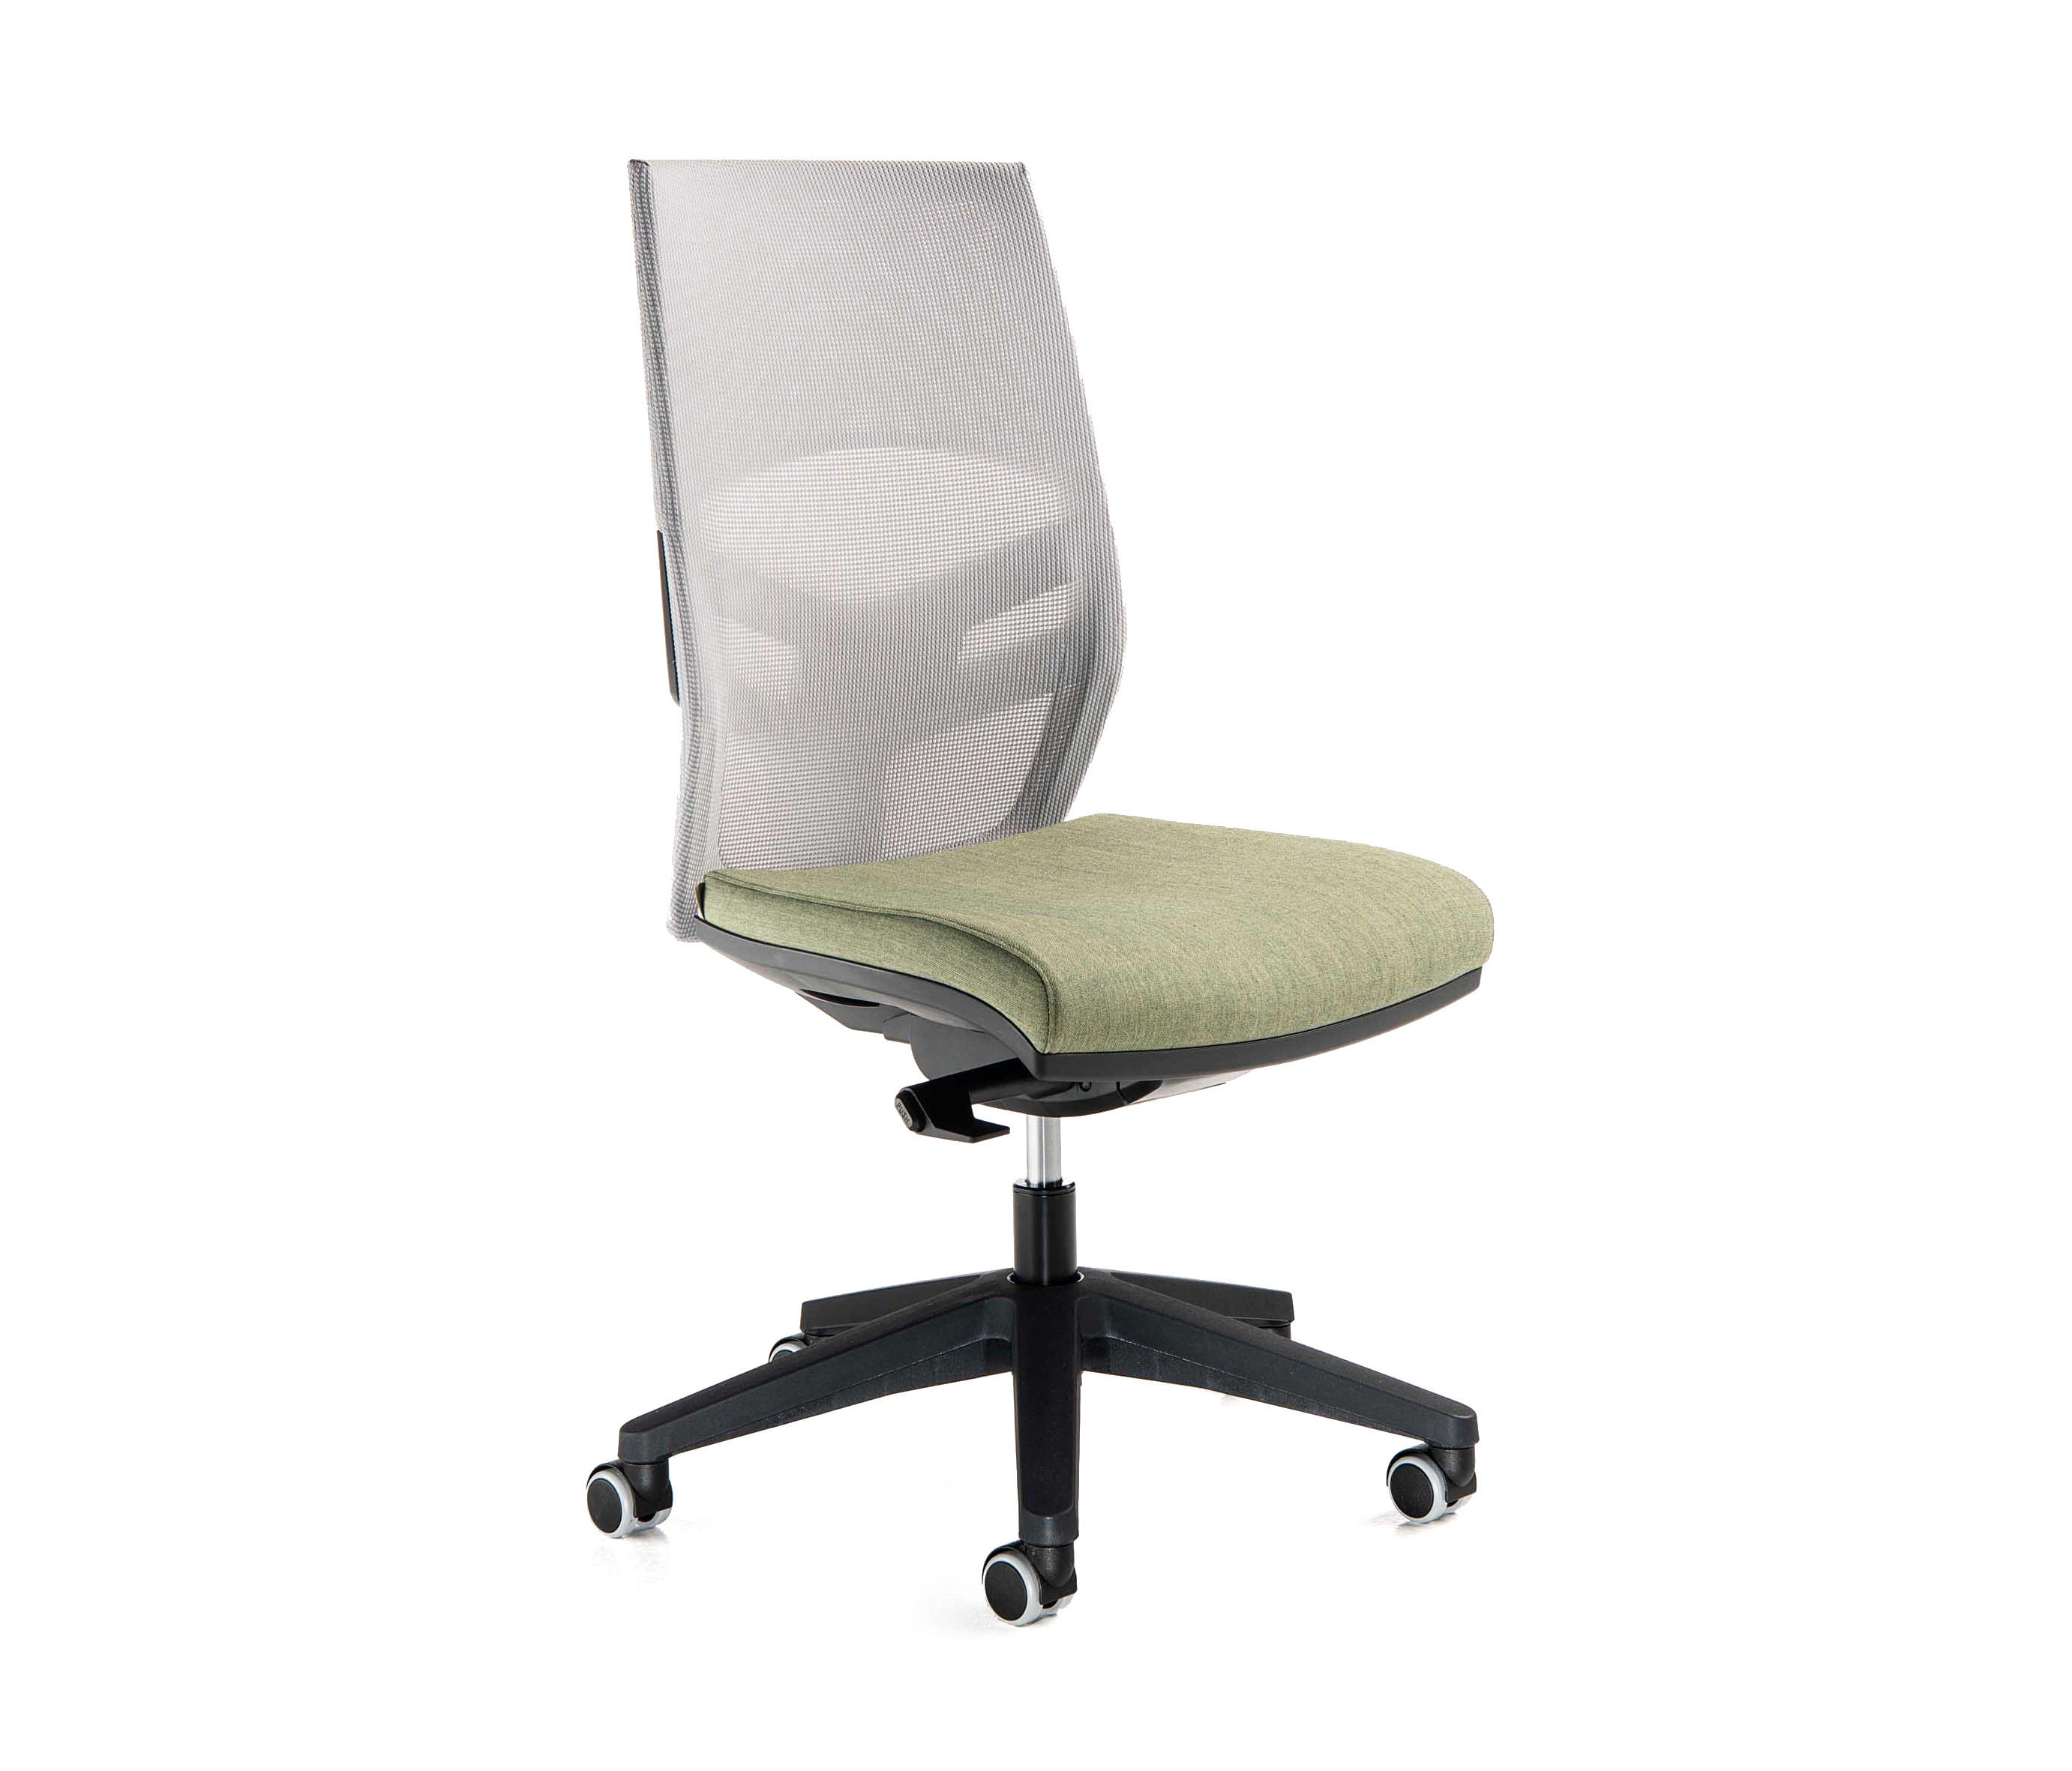 EASY B BASIC Task chairs from Estel Group